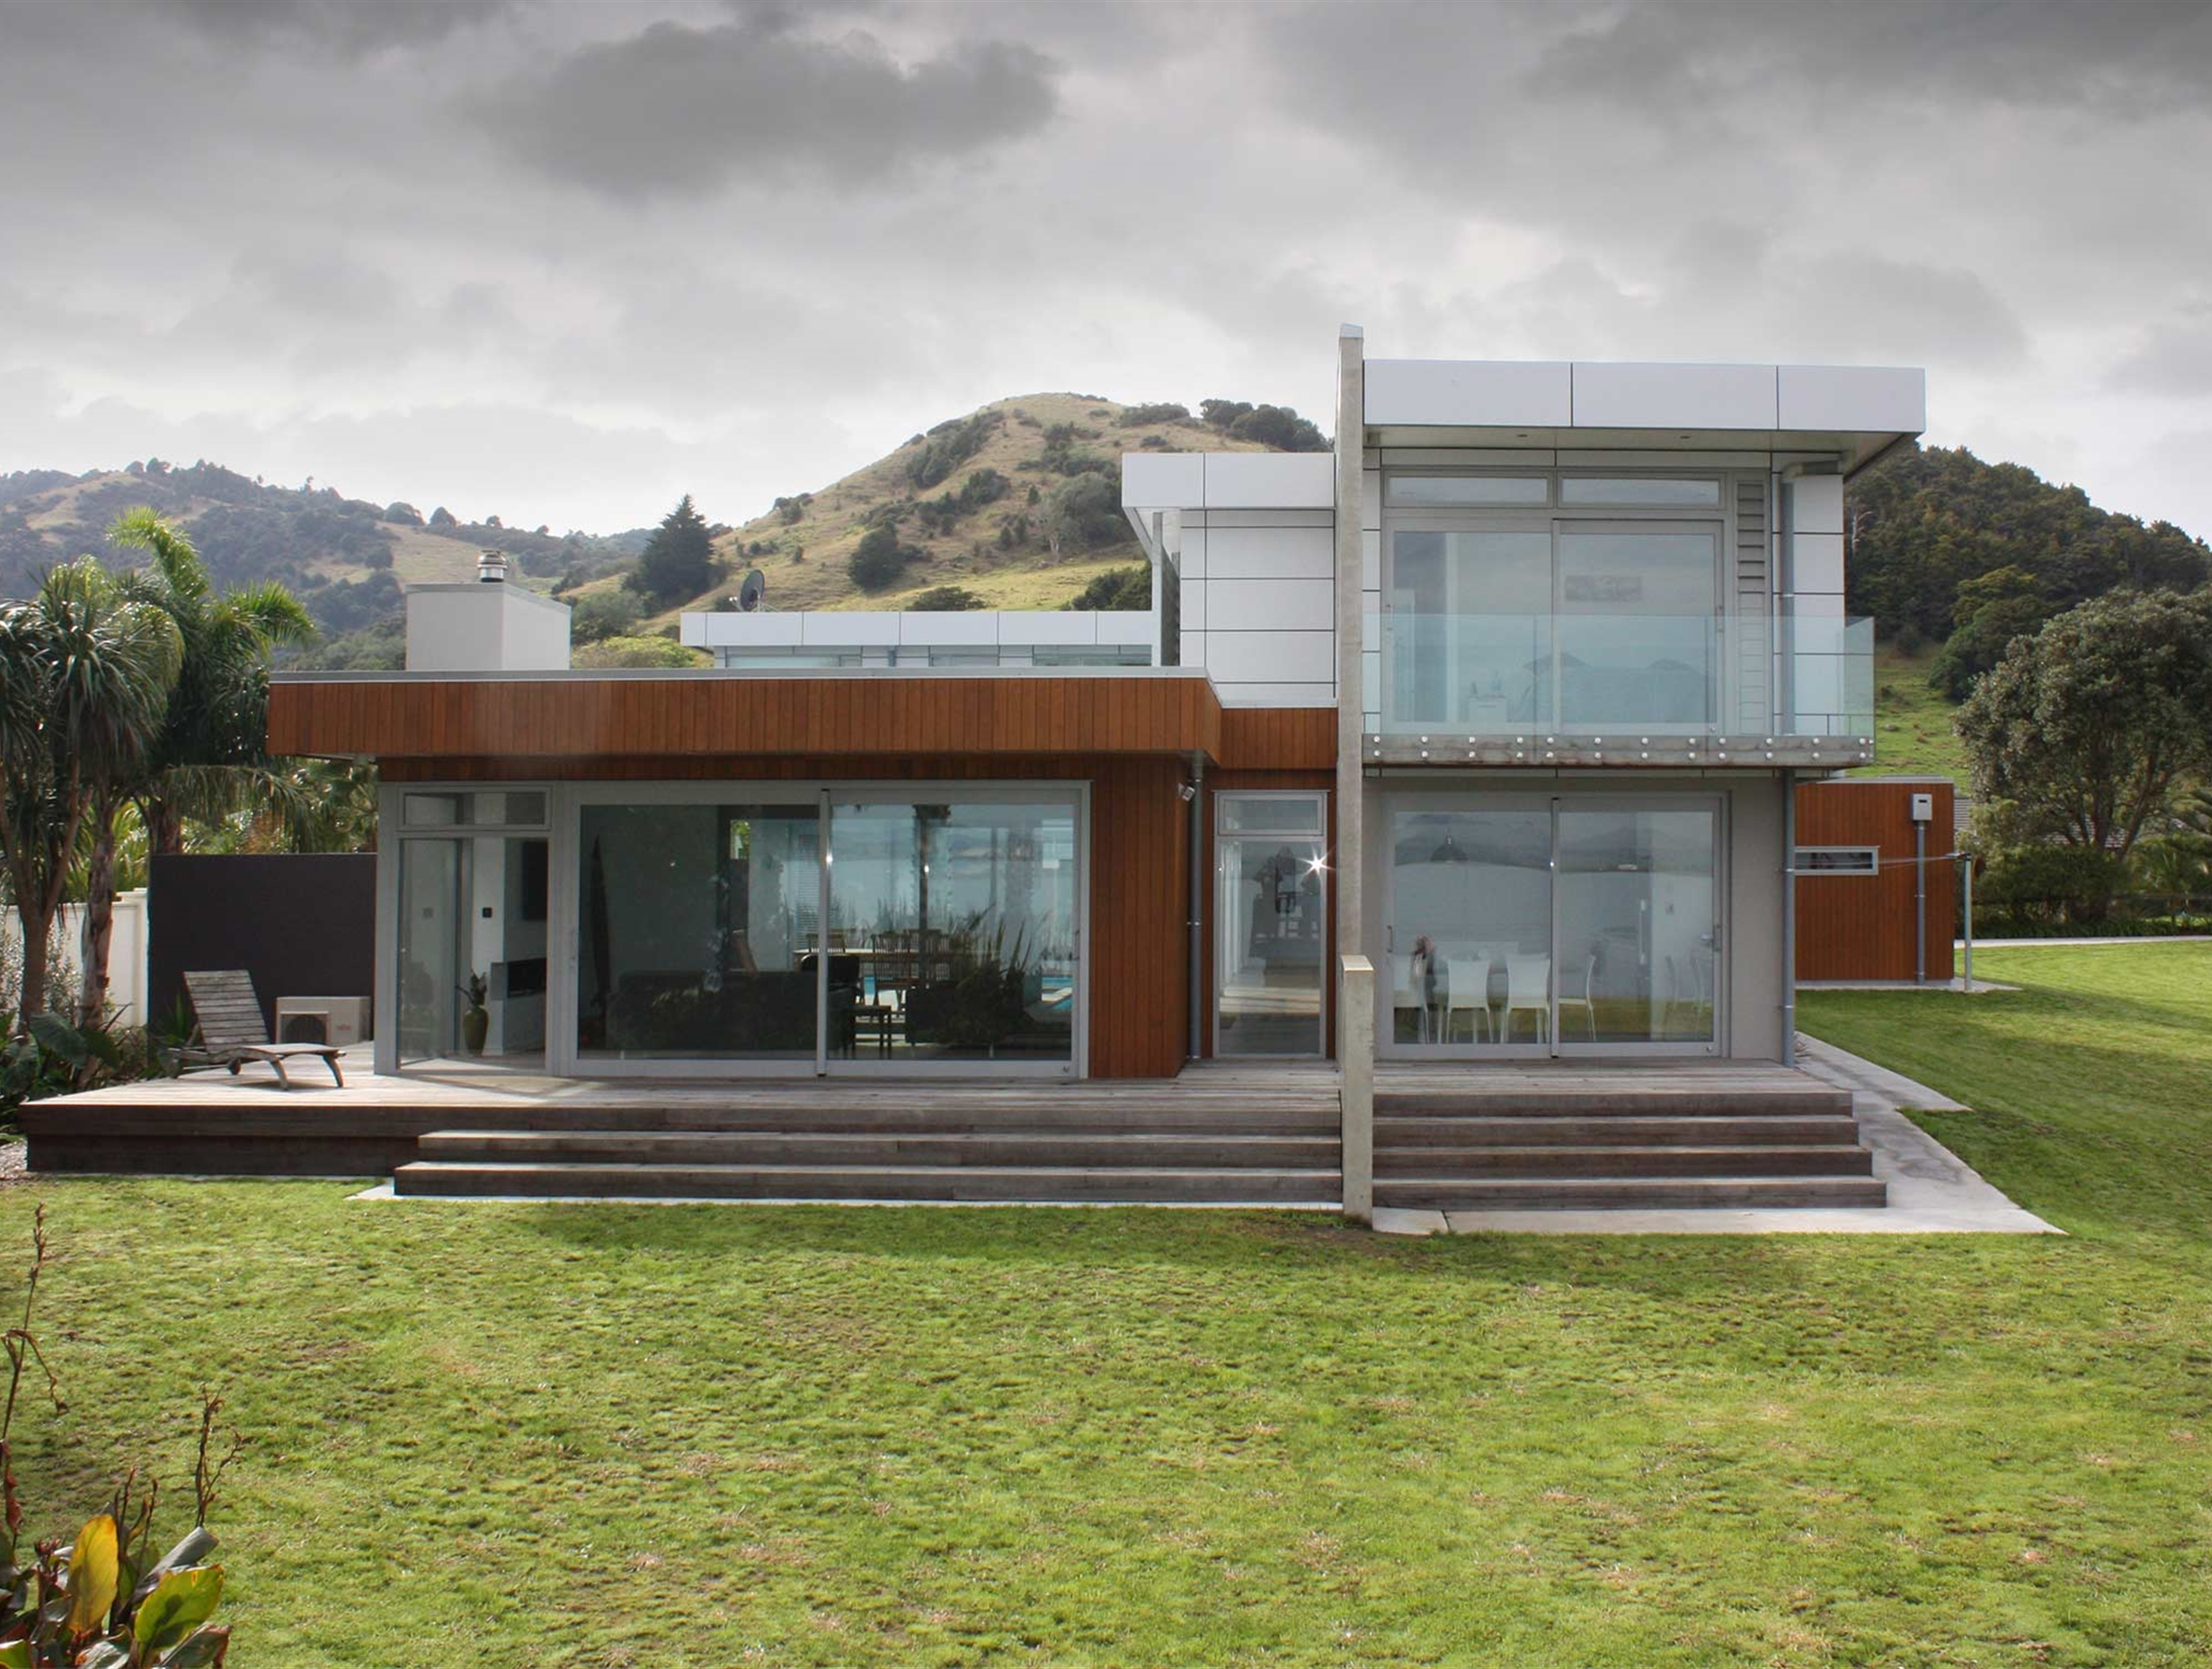 Architecturally design house on the Whangarei Harbour